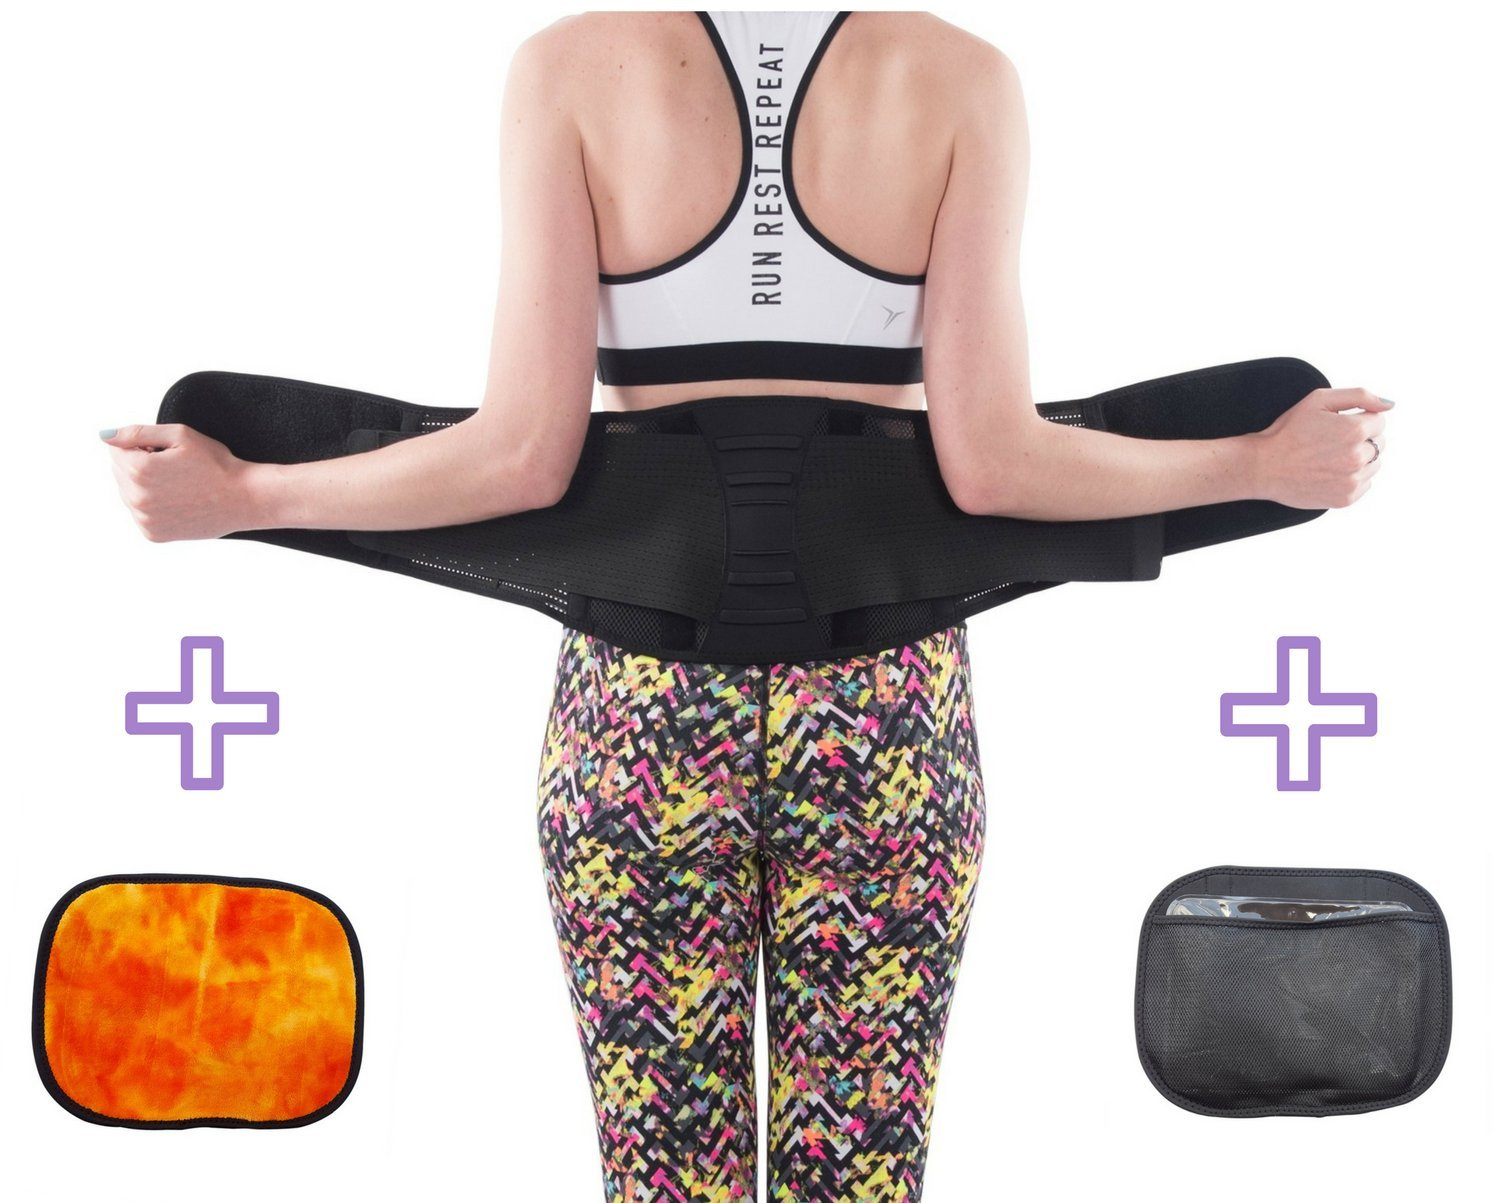 Lower Back Brace by FOMI Care | Removable Lumbar Pad + Hot Cold Pack Pouch for Sciatica, Herniated or Bulging Disc Pain Relief | Lumbar Waist Support Belt for Work, Home, or Gym | Fits Up to 37'' Waist